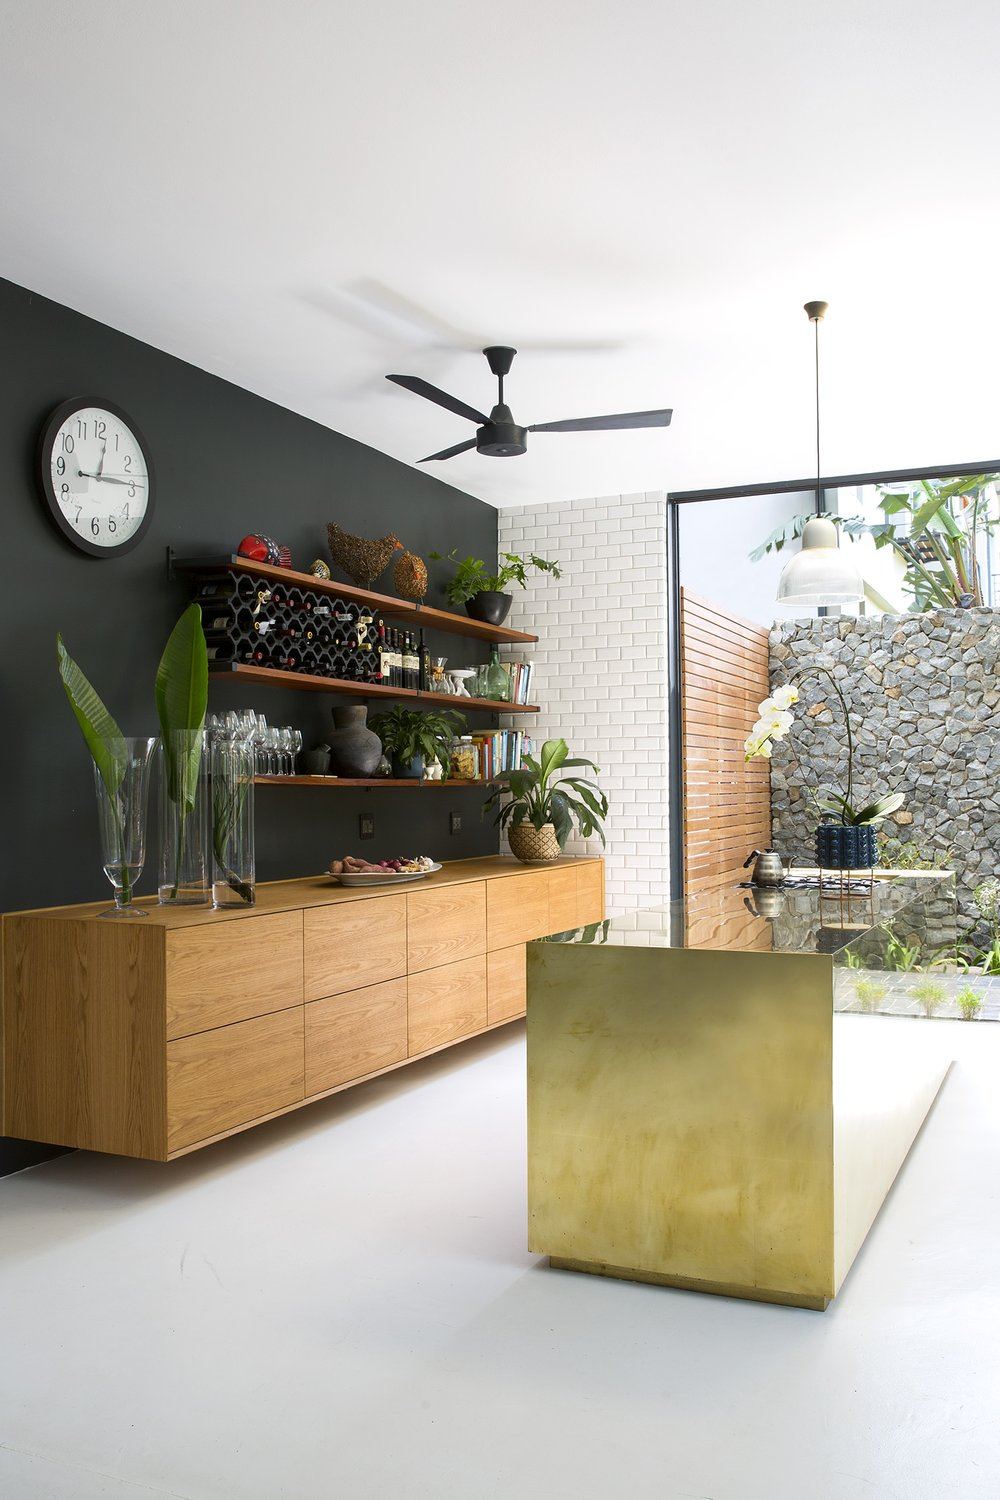 julia-rutherfoord-architect-kitchen-2017-02.jpg